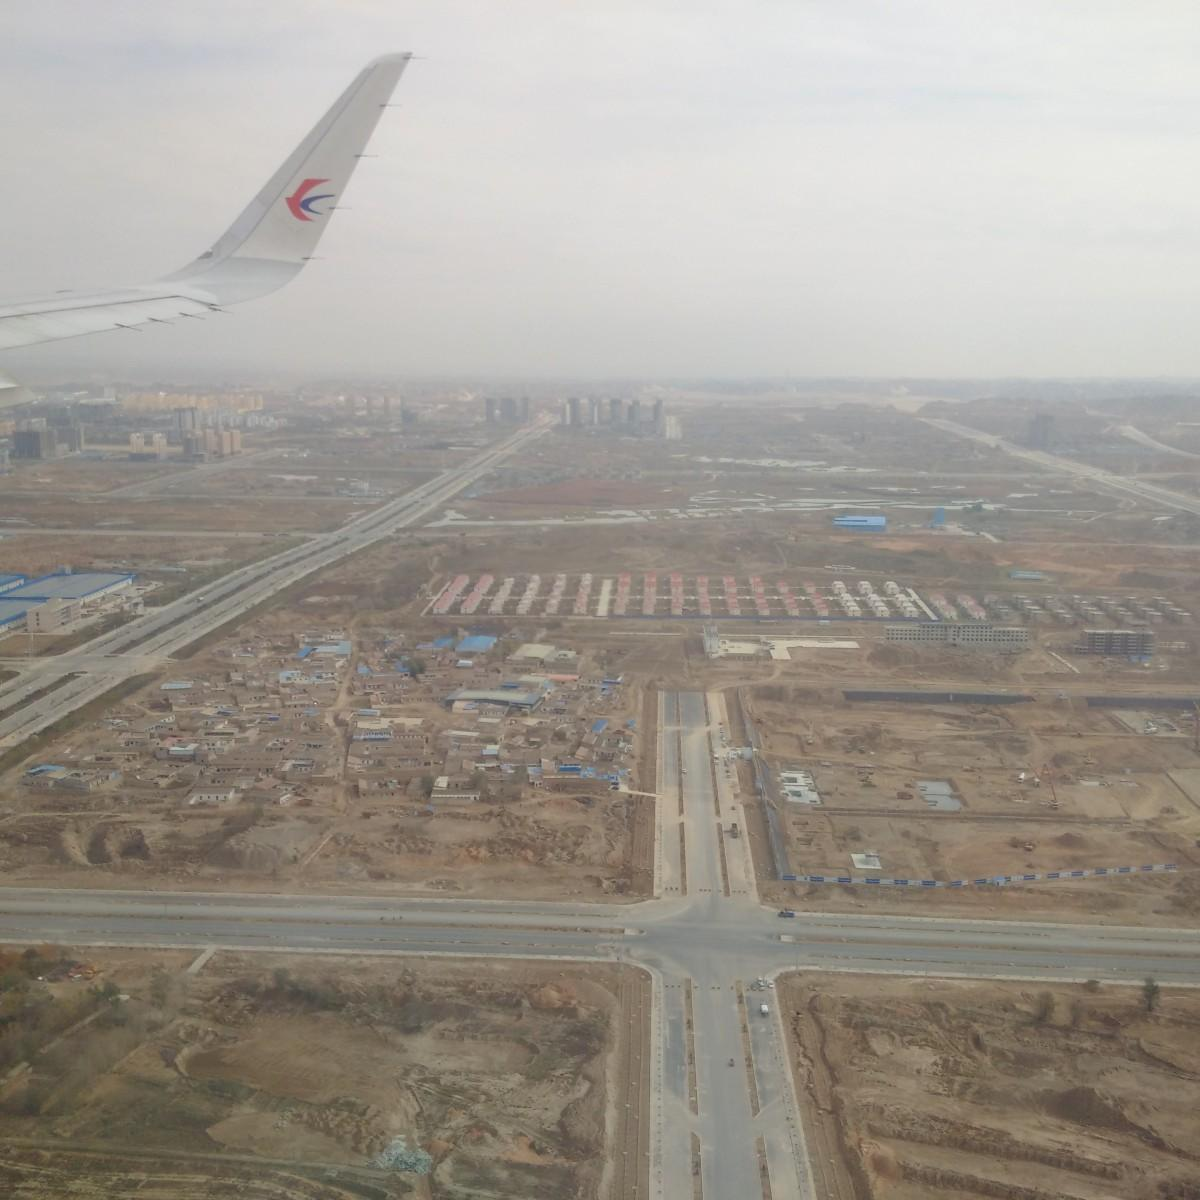 Lanzhou New Area as seen from above. (Photo by the author)